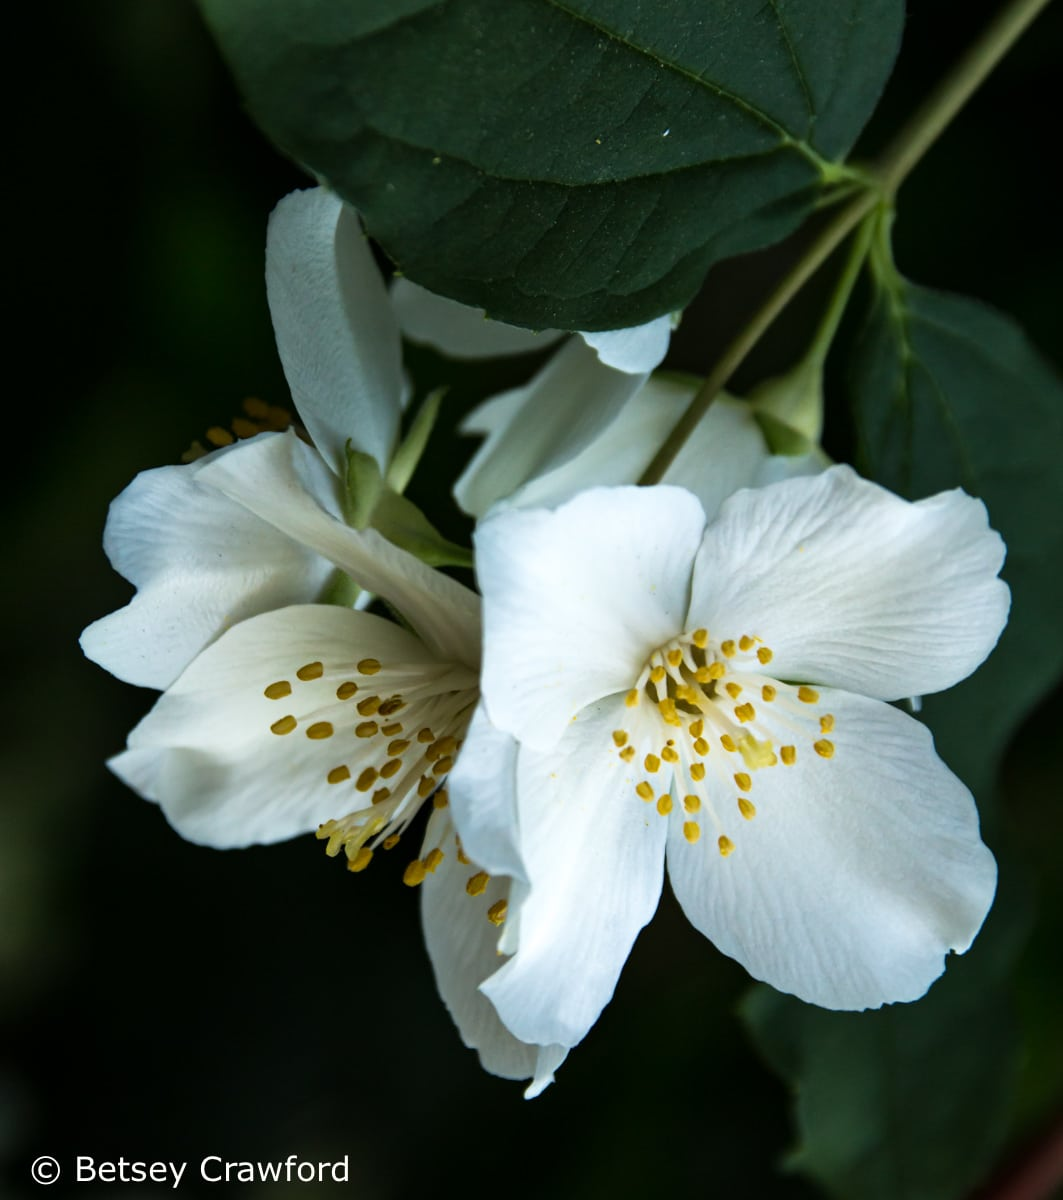 California mock orange (Philadelphus lewisii) in a native plant garden in El Sobrante, California